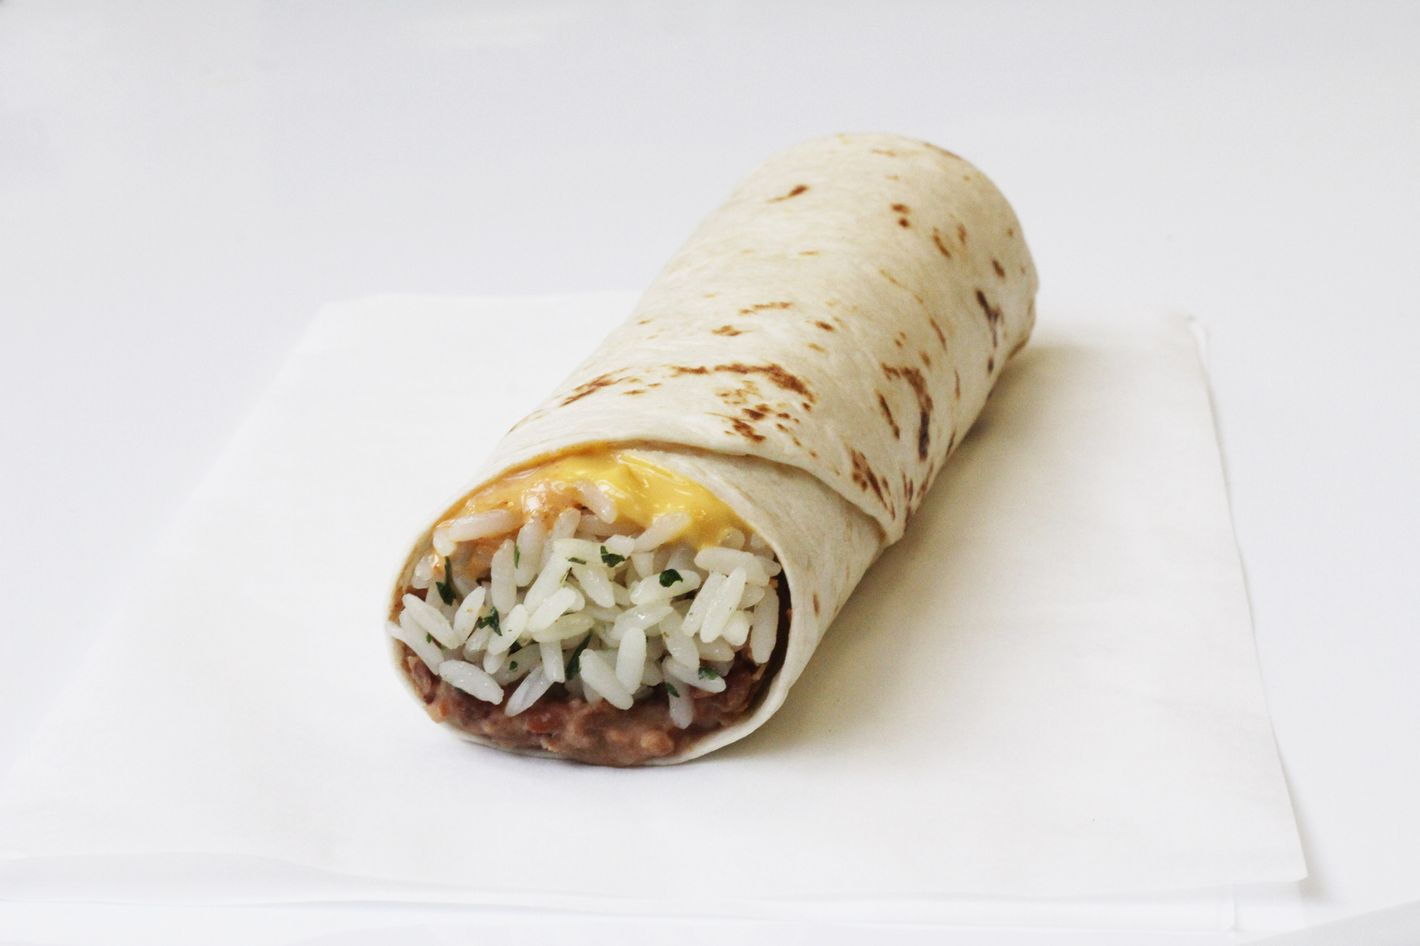 Taco Bell has gotten one step closer to just giving its food away.